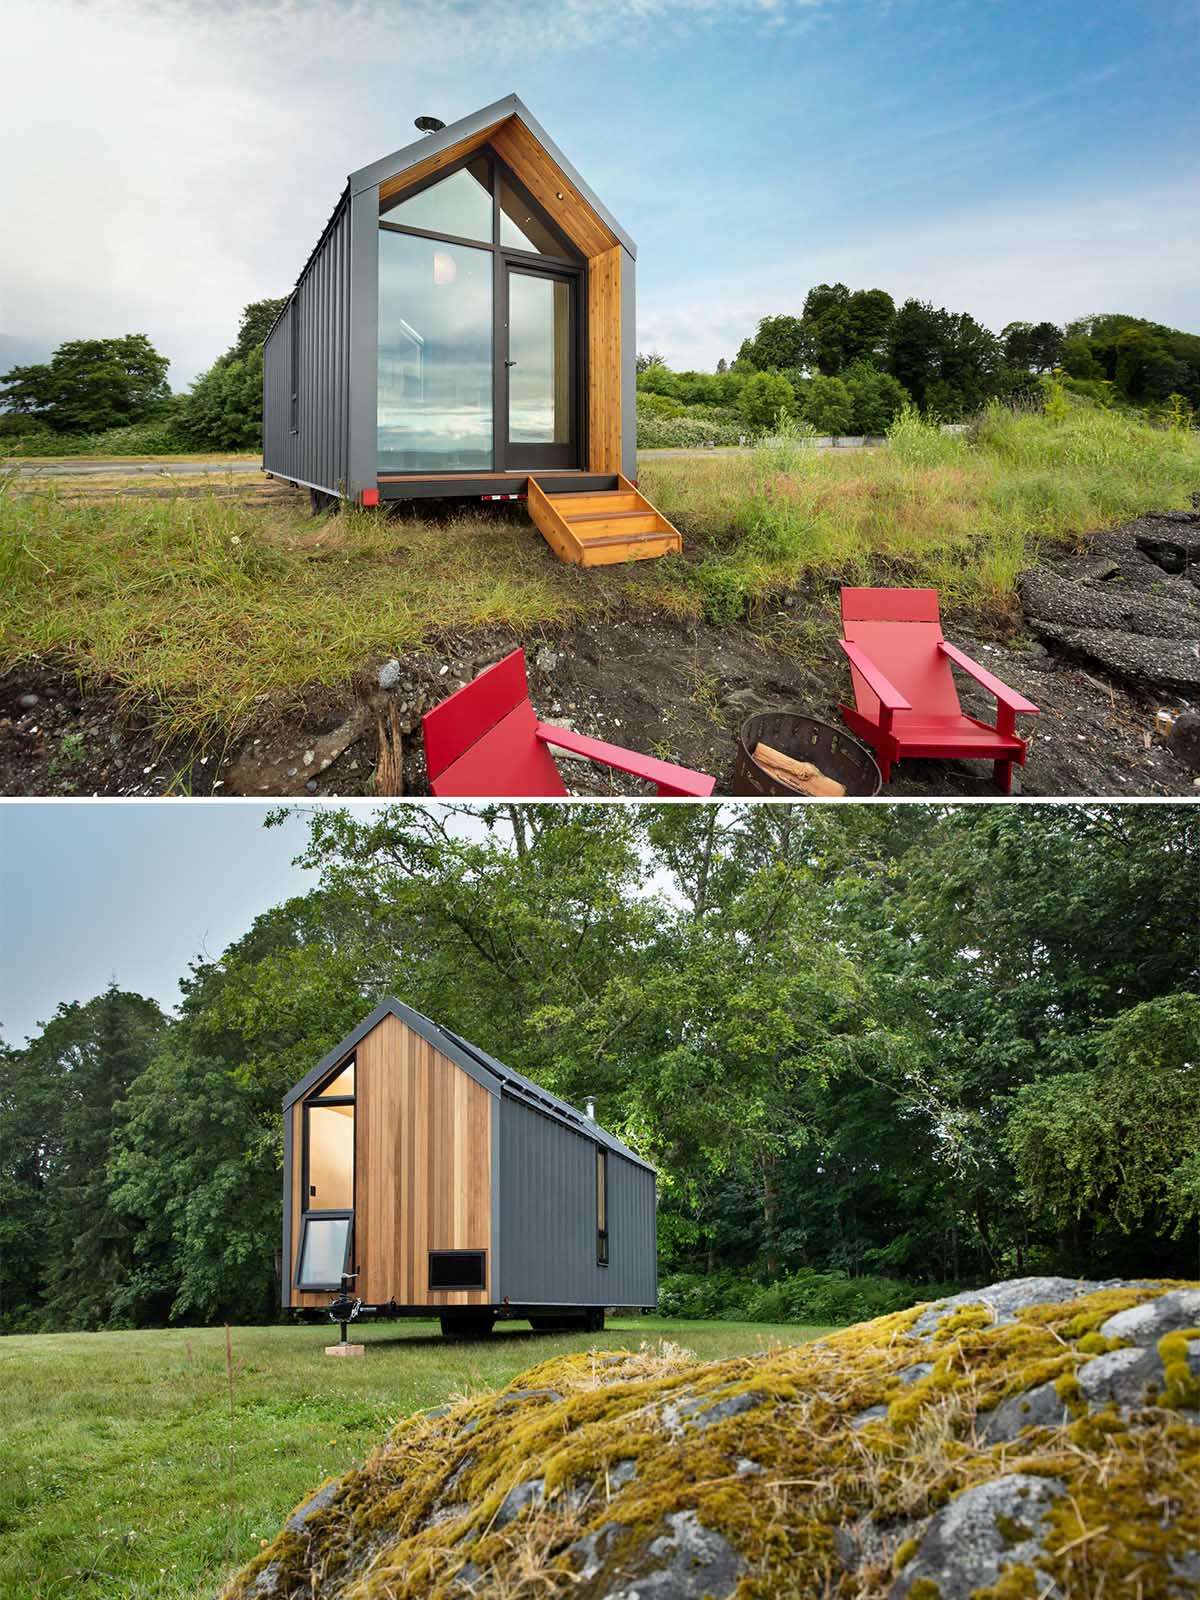 This modern tiny home has a solar array on the roof equipped with batteries, standing-seam metal siding, and cedar accents.